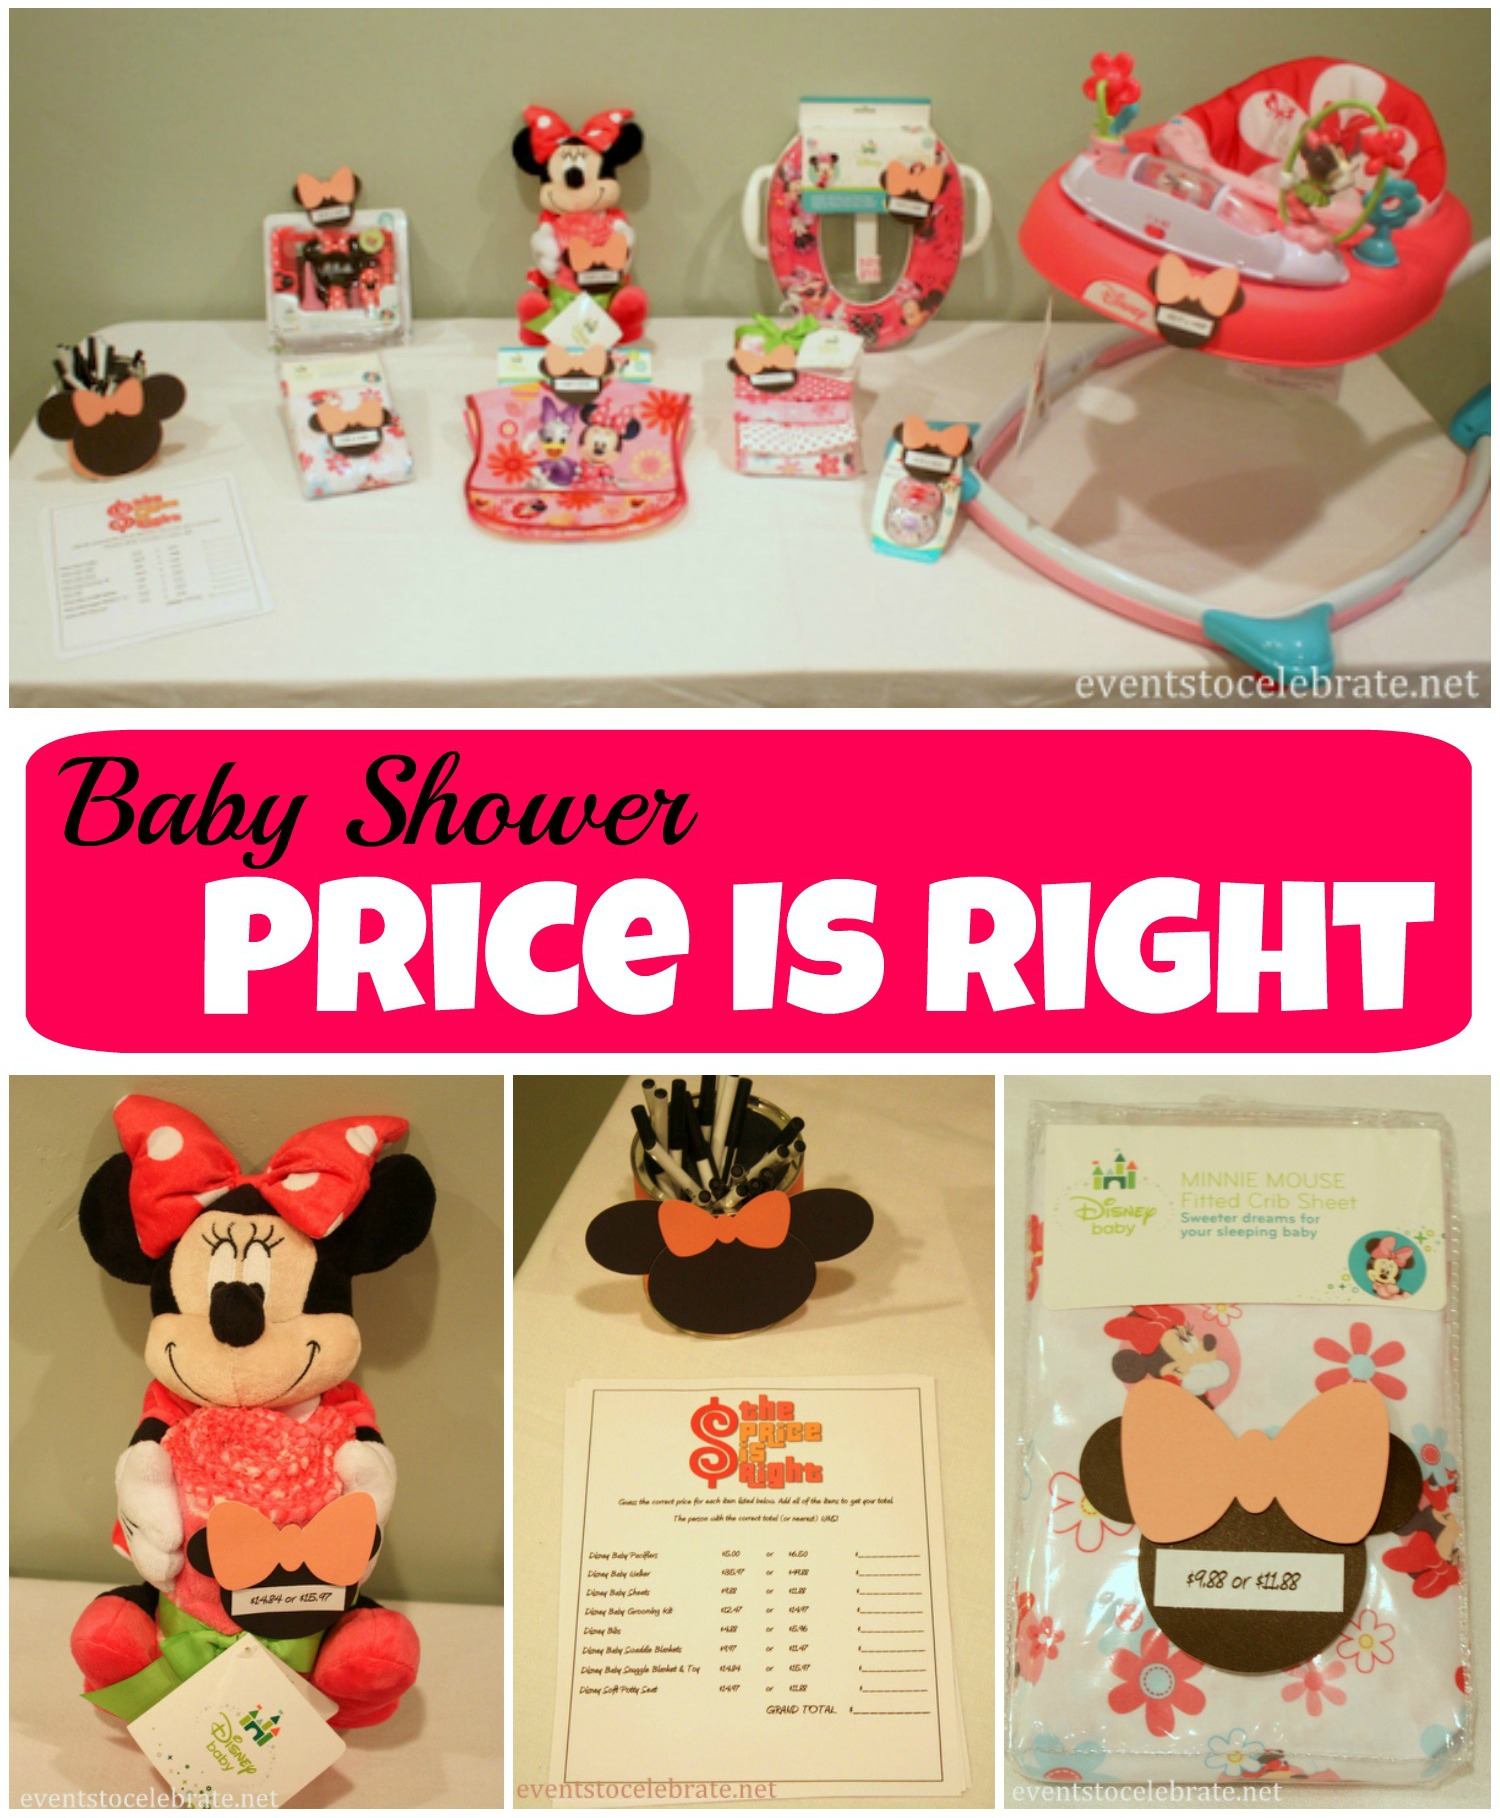 Baby Shower Price Is Right   Events To Celebrate